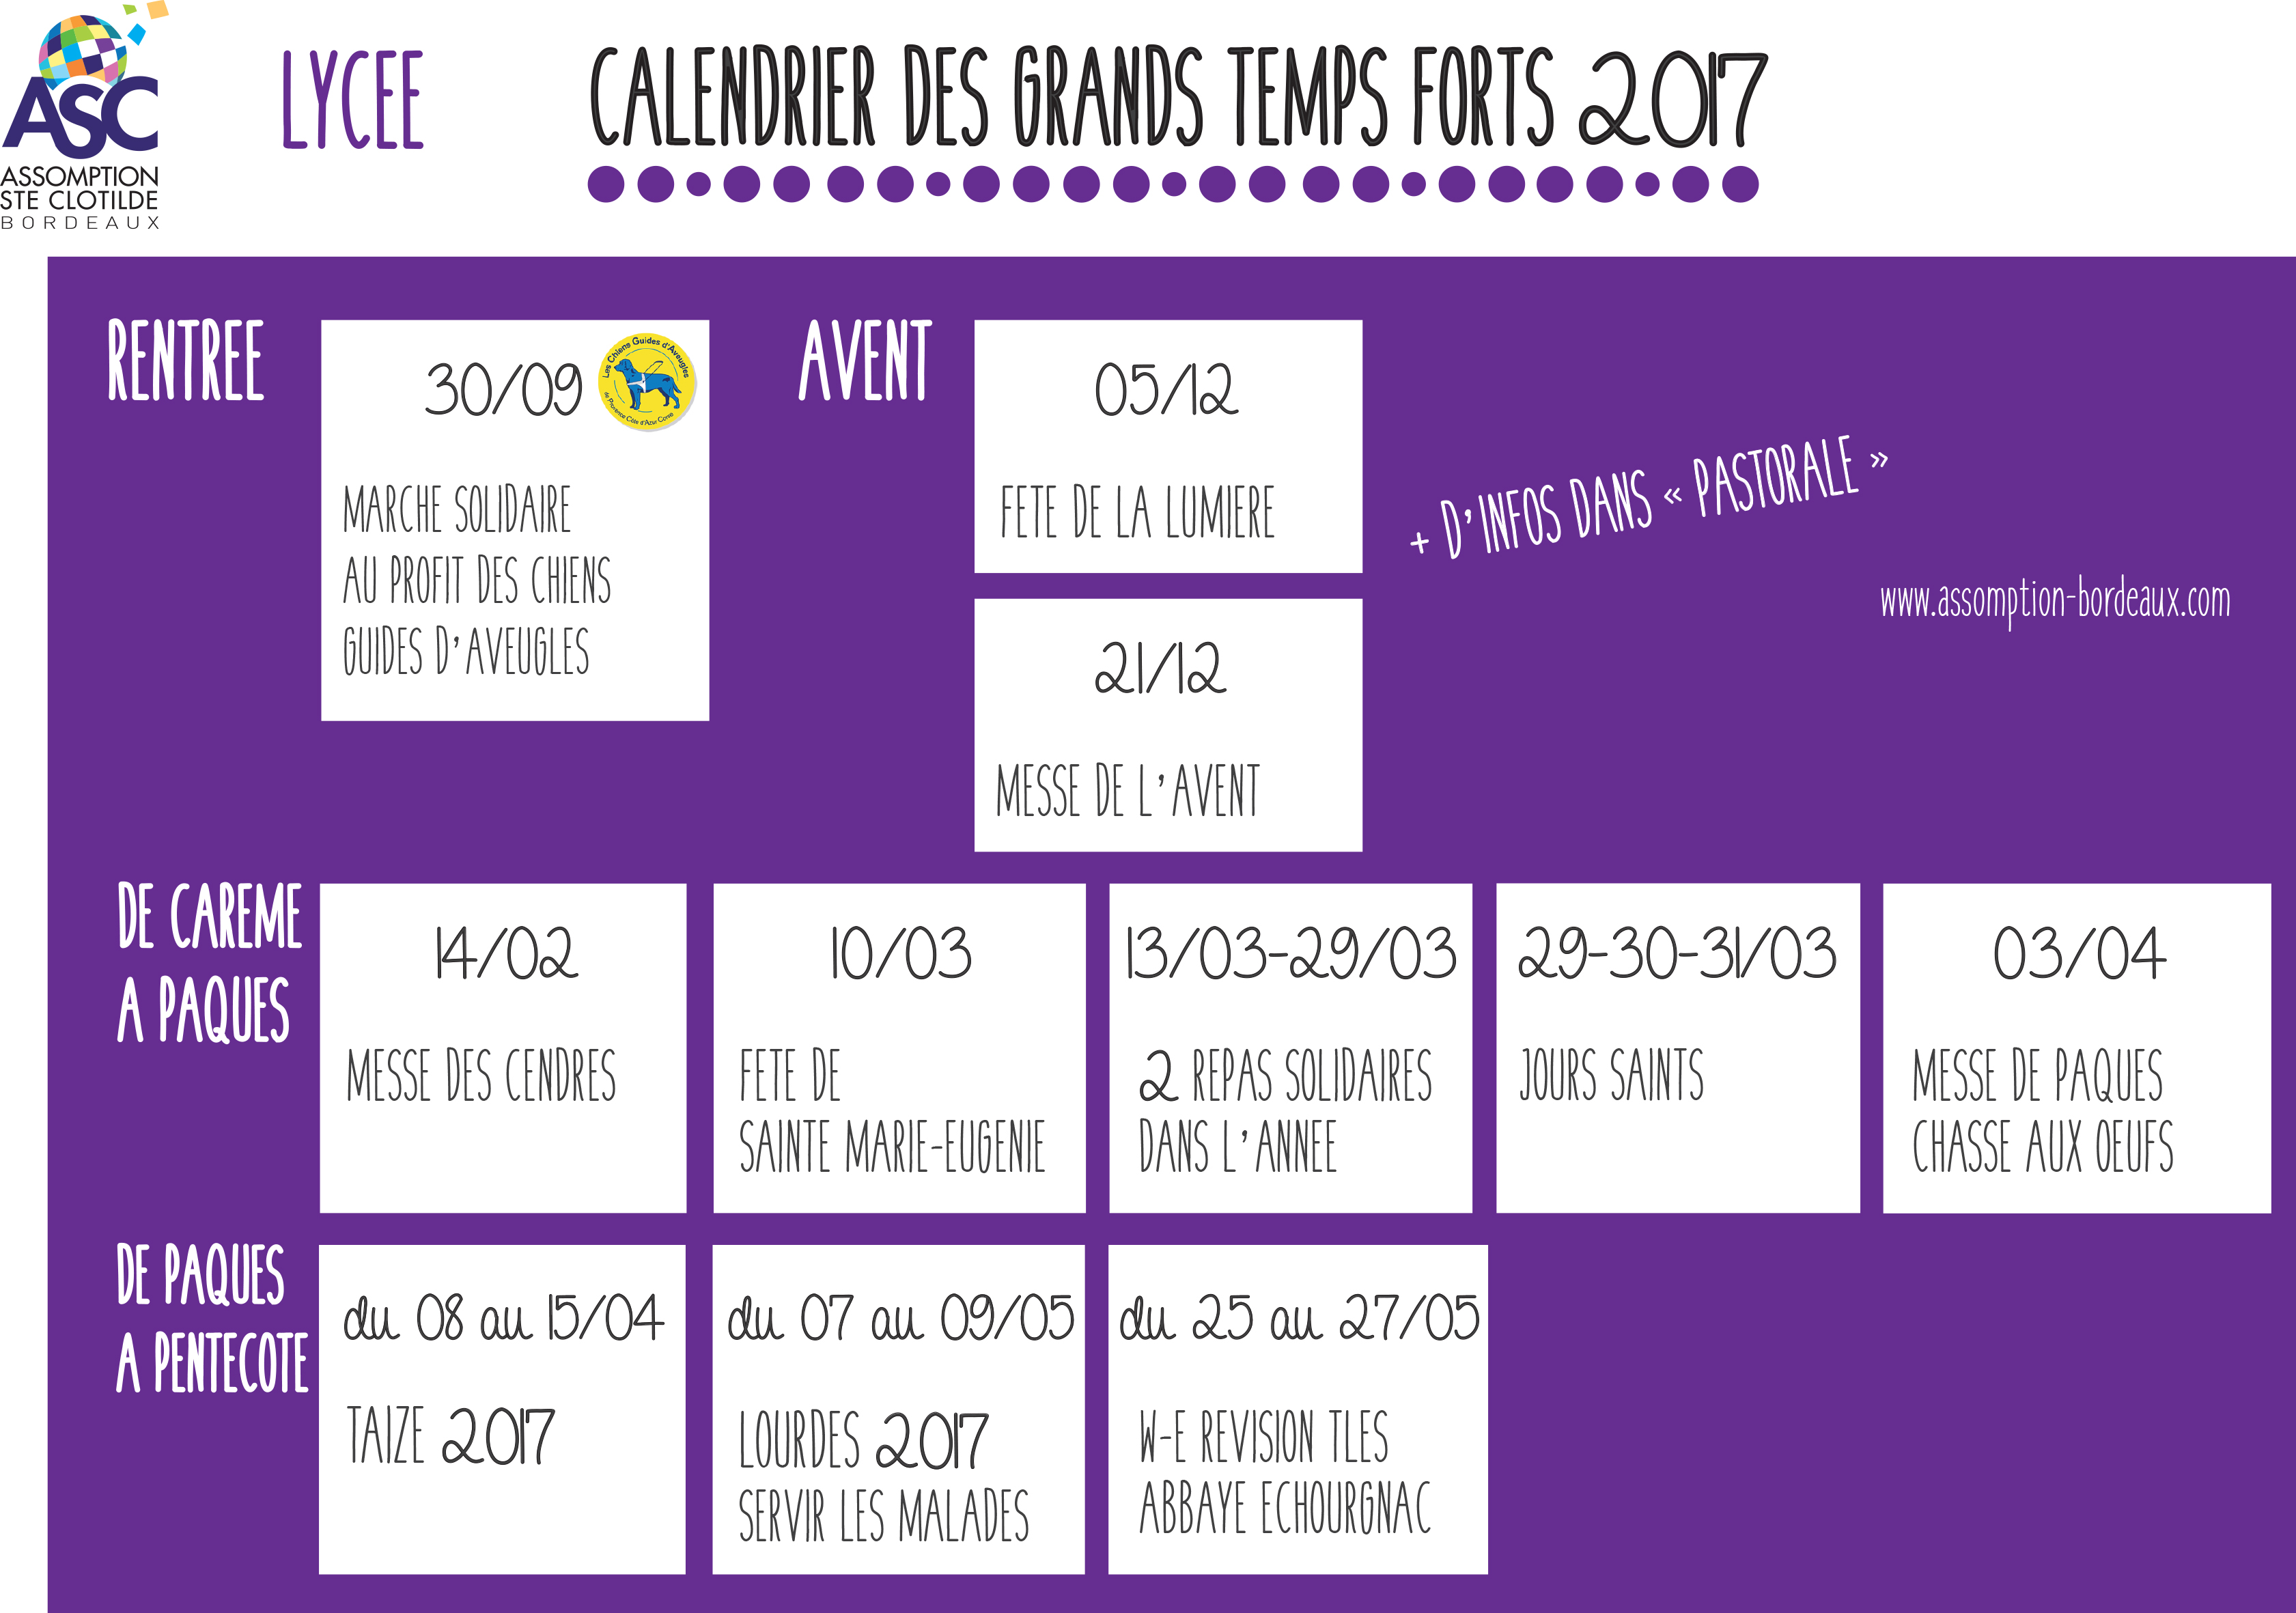 12 CALENDRIER DES GRANDS TEMPS FORTS 2017 LYCEE